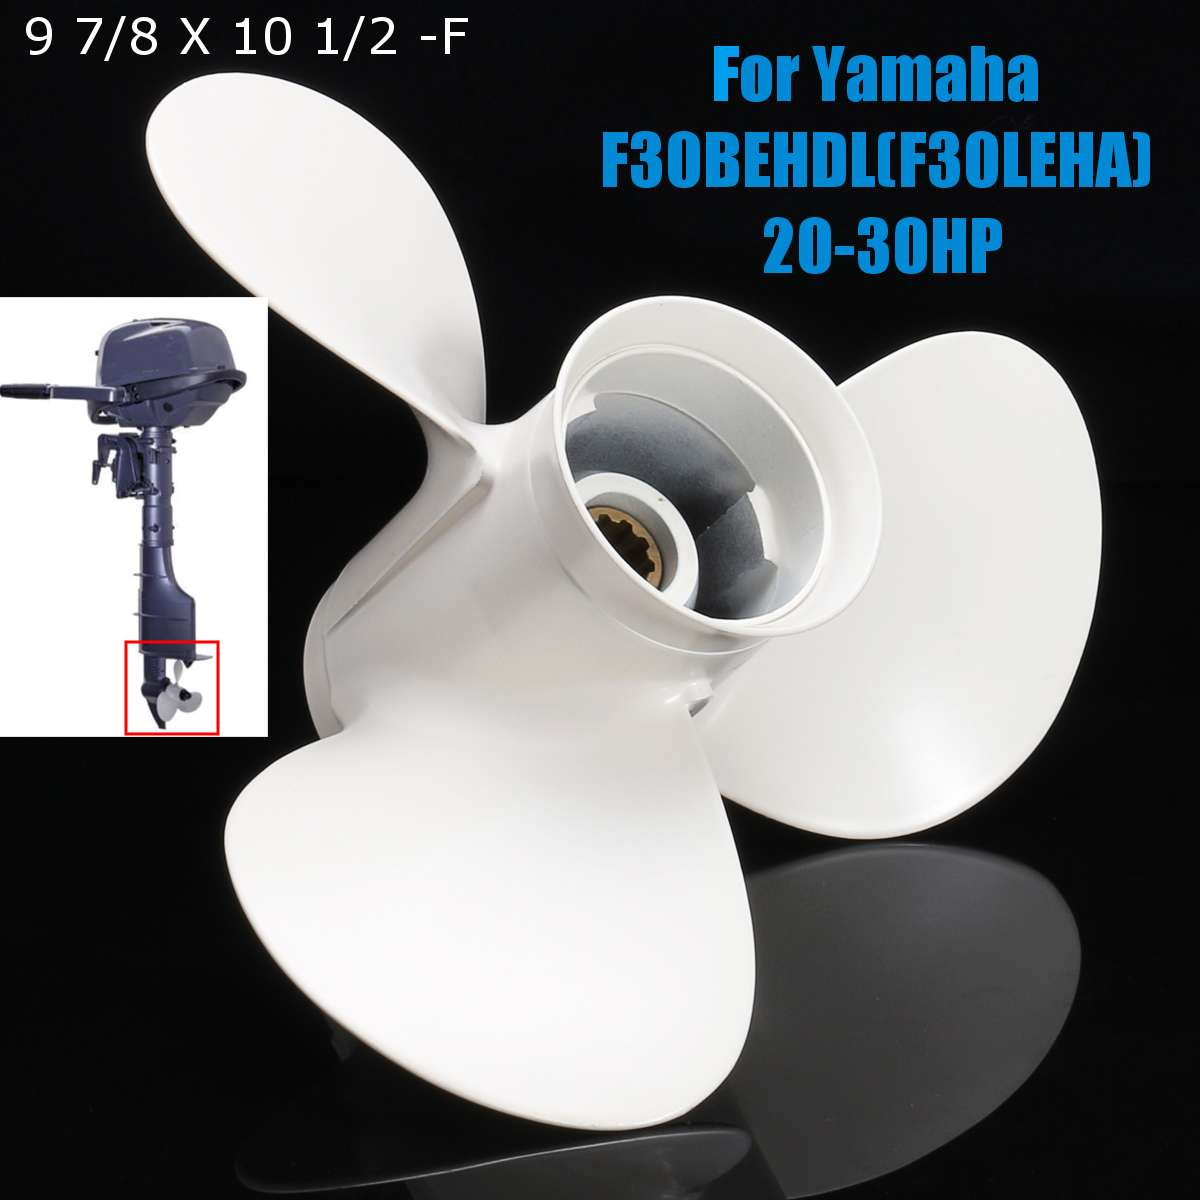 Worldwide delivery propeller outboard yamaha 30hp in NaBaRa Online